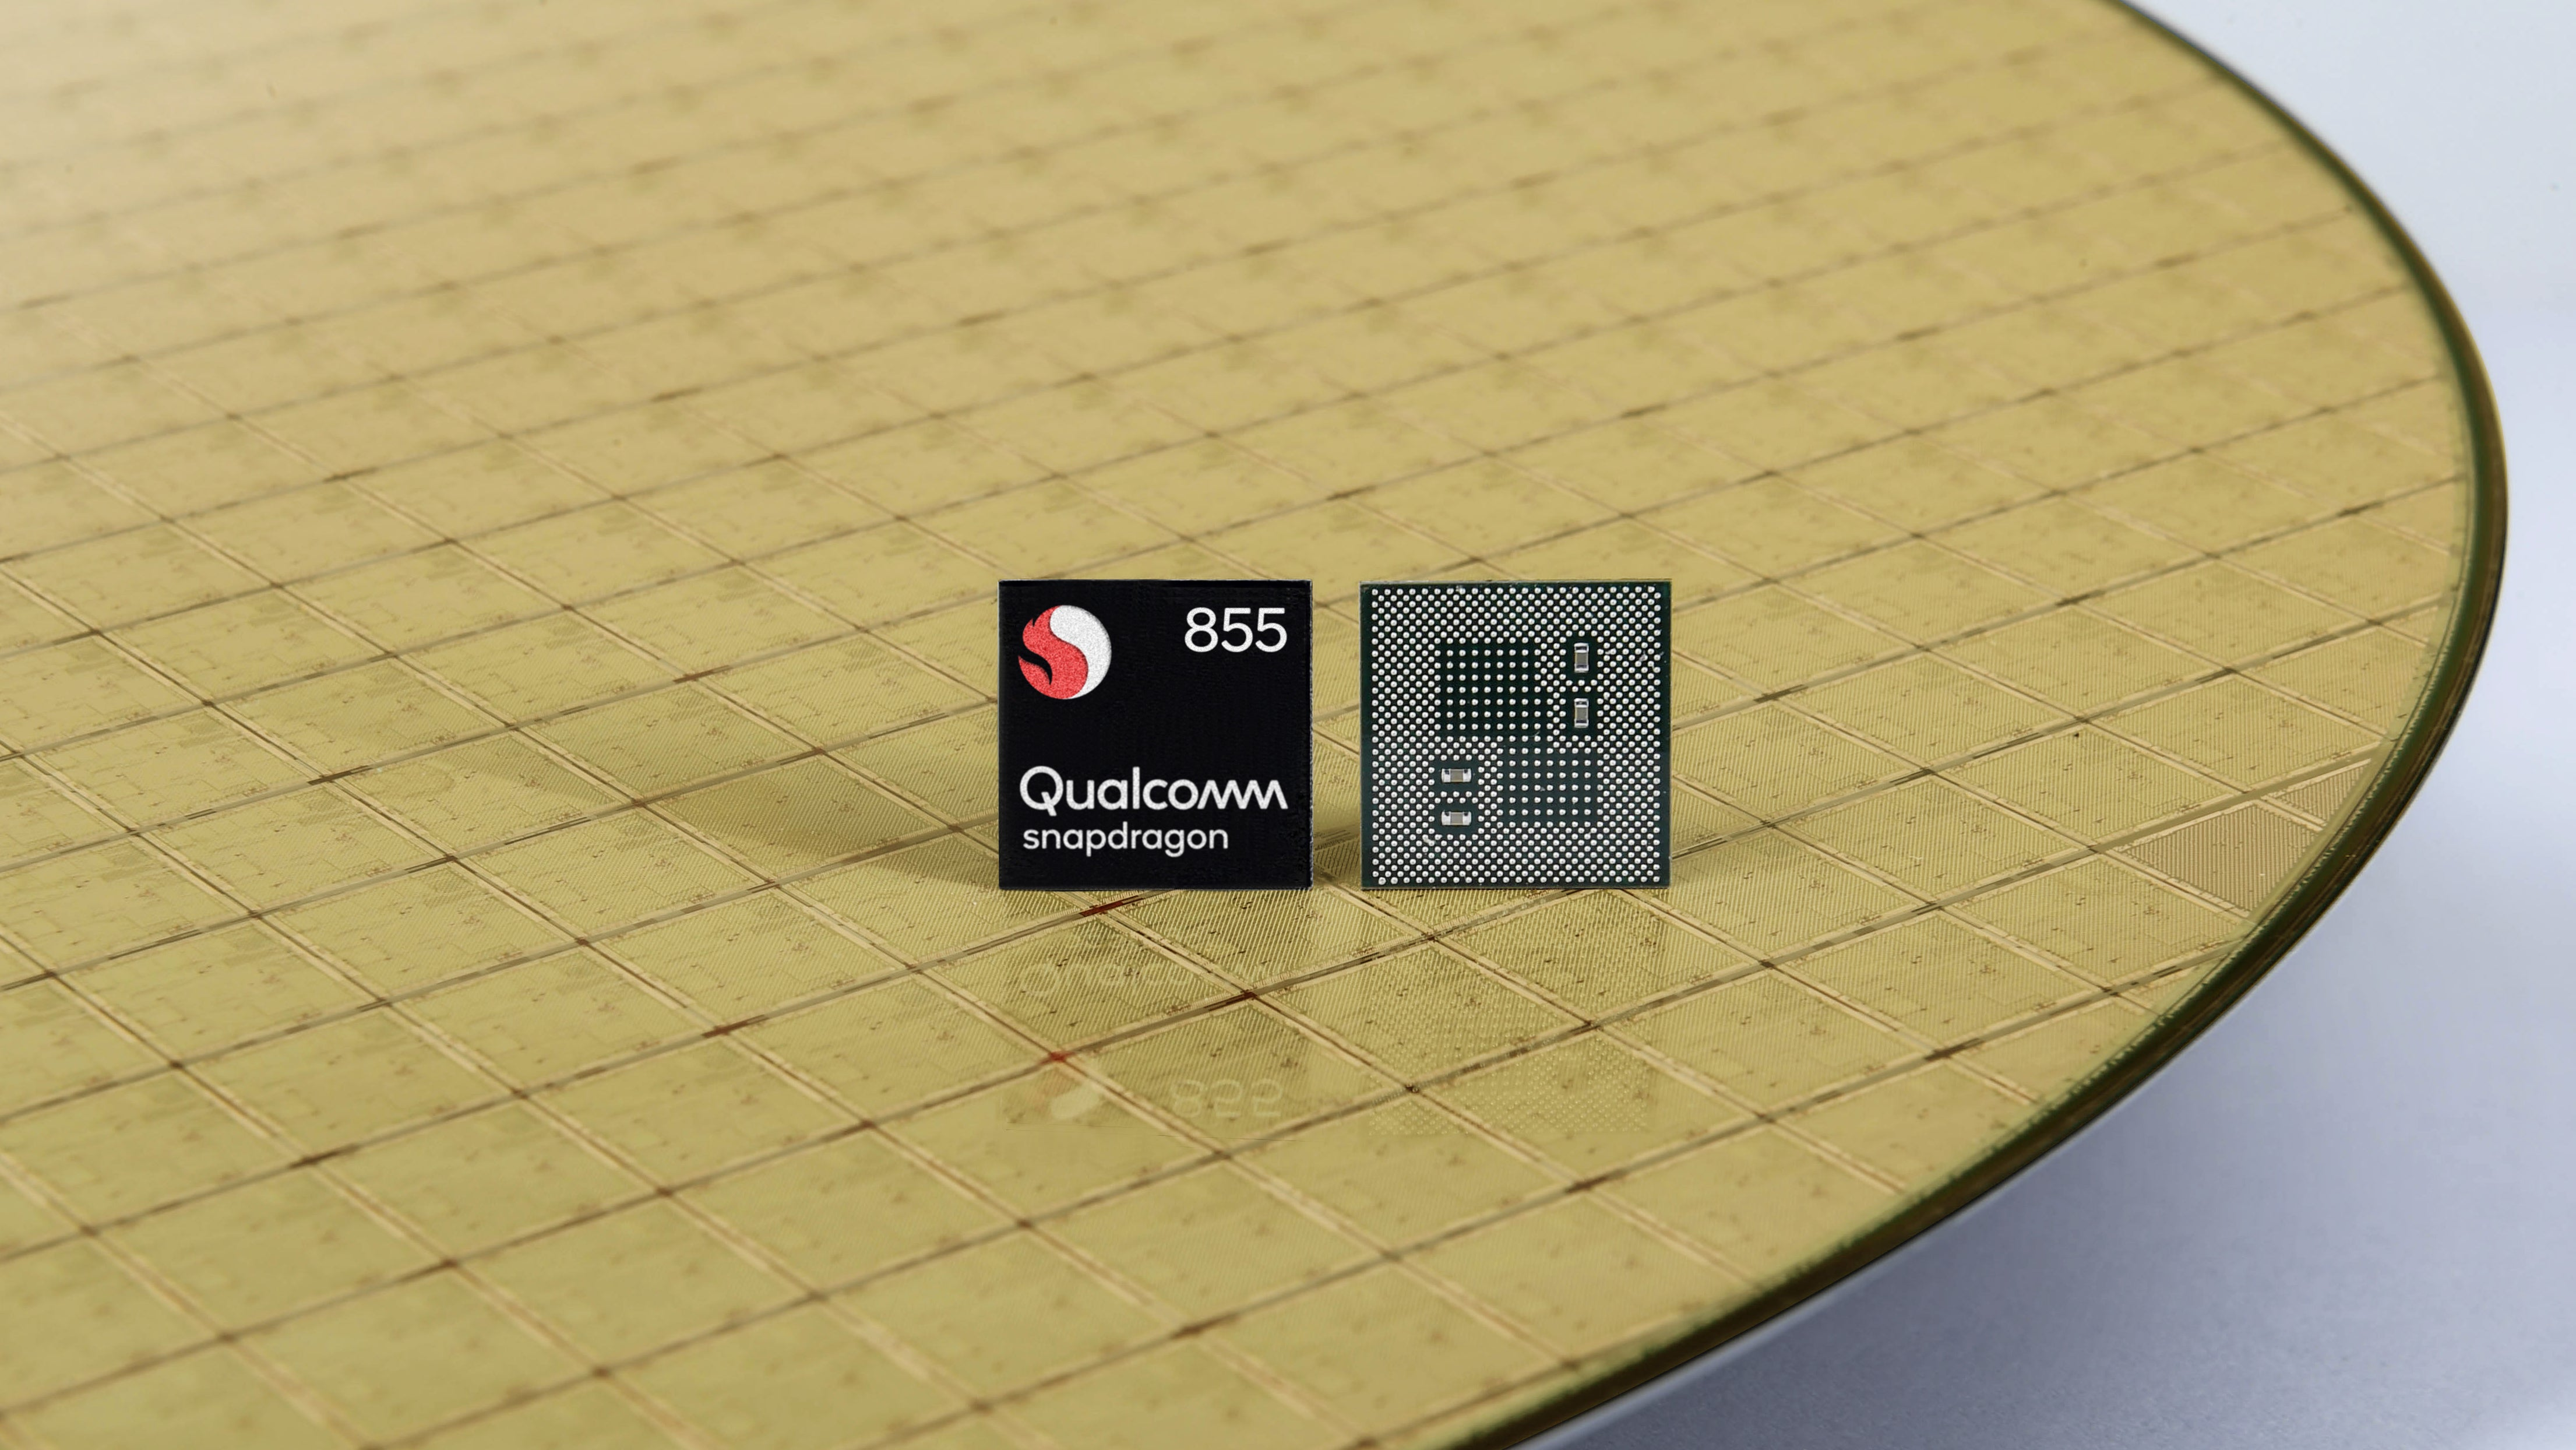 Qualcomm's Snapdragon 855 Announced, Here's What That Means For Next Year's Top Android Phones